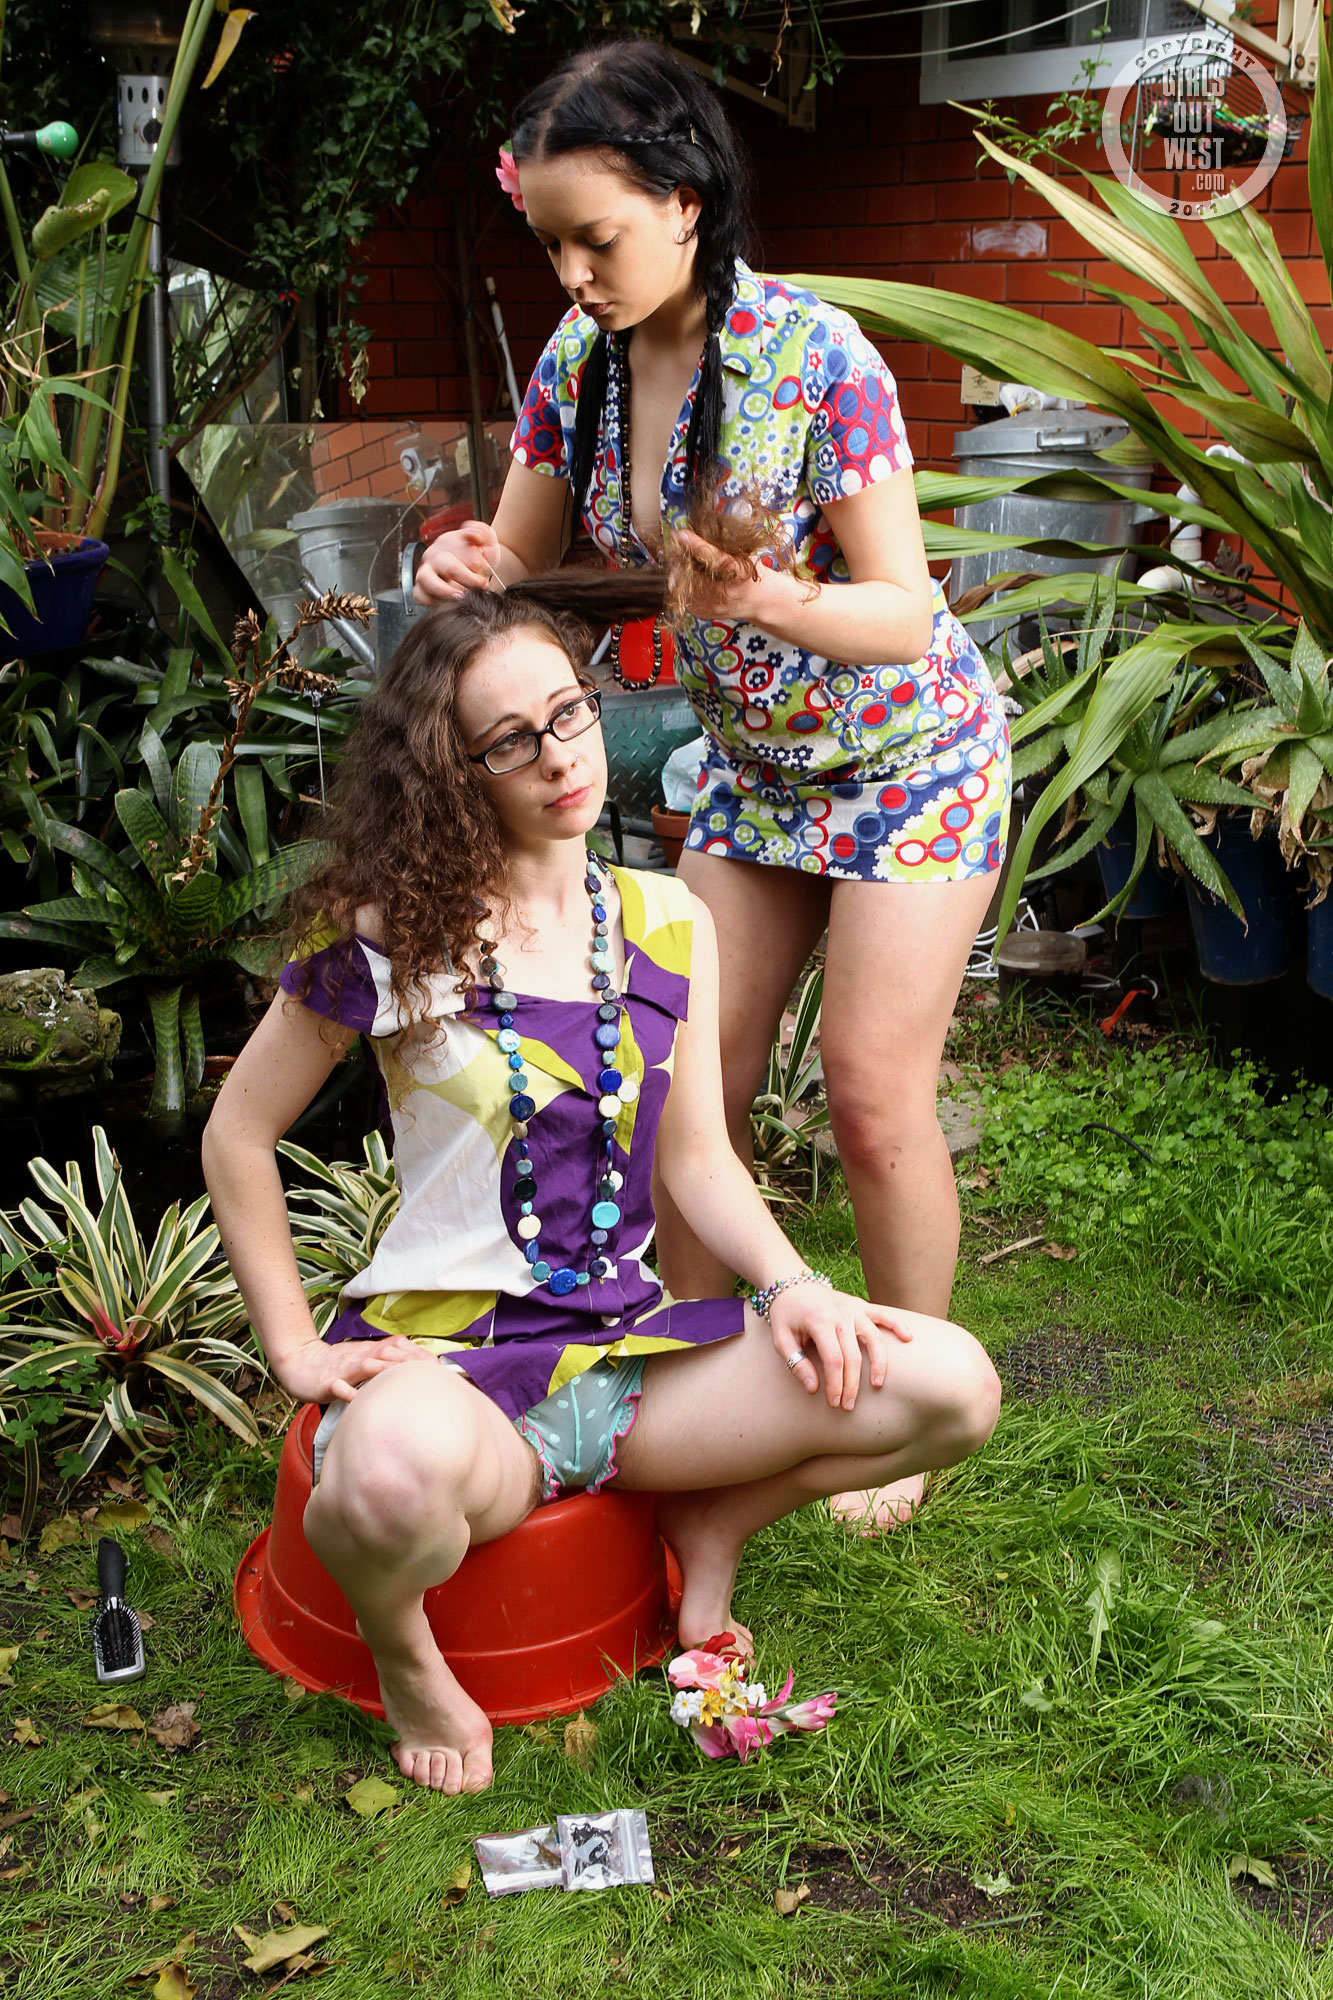 Actrices Porno Omas Francesas girls out west frances and rosie hippy chicks frances's